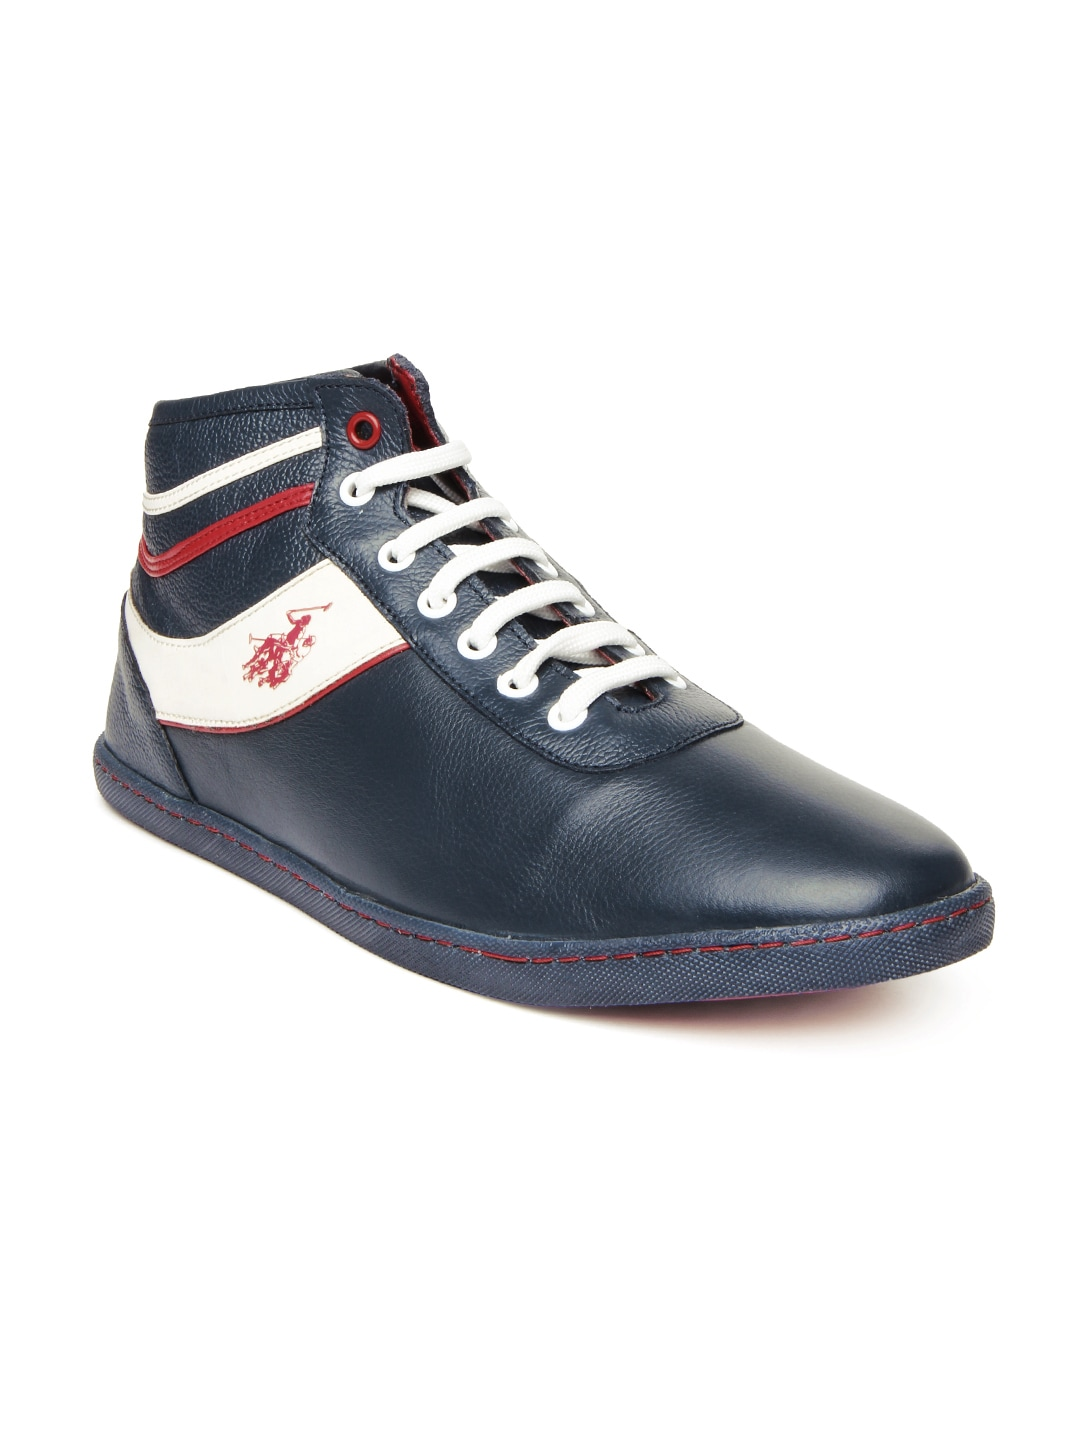 buy u s polo assn blue leather casual shoes 632